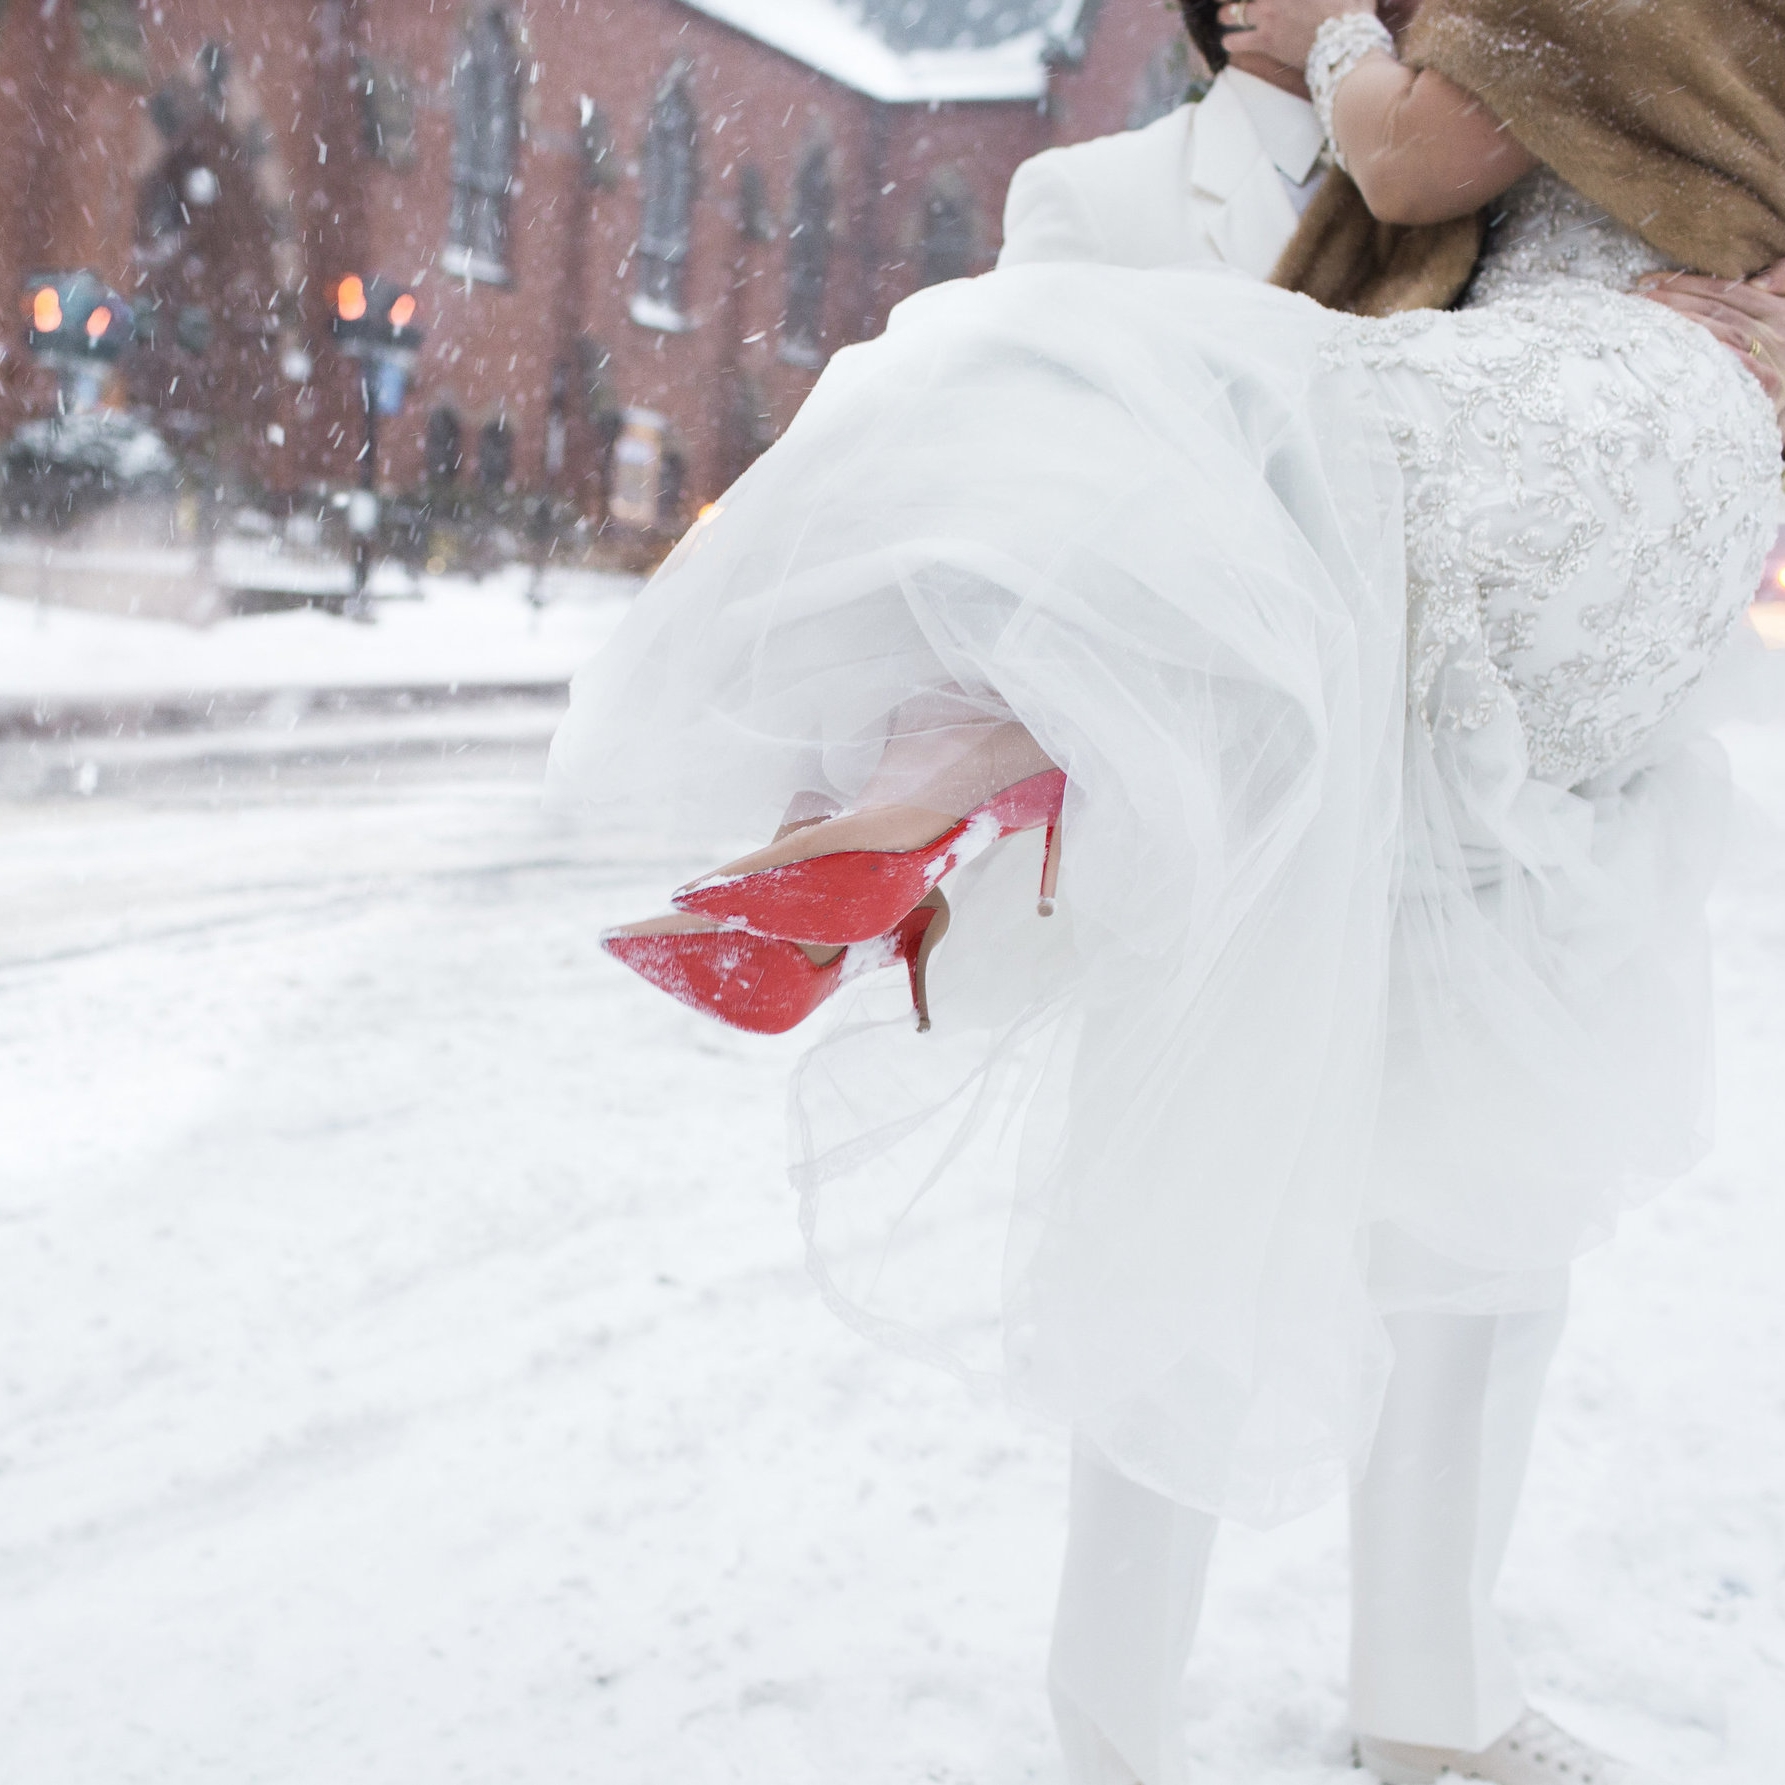 Snow added extra sparkle to a luxurious city wedding.